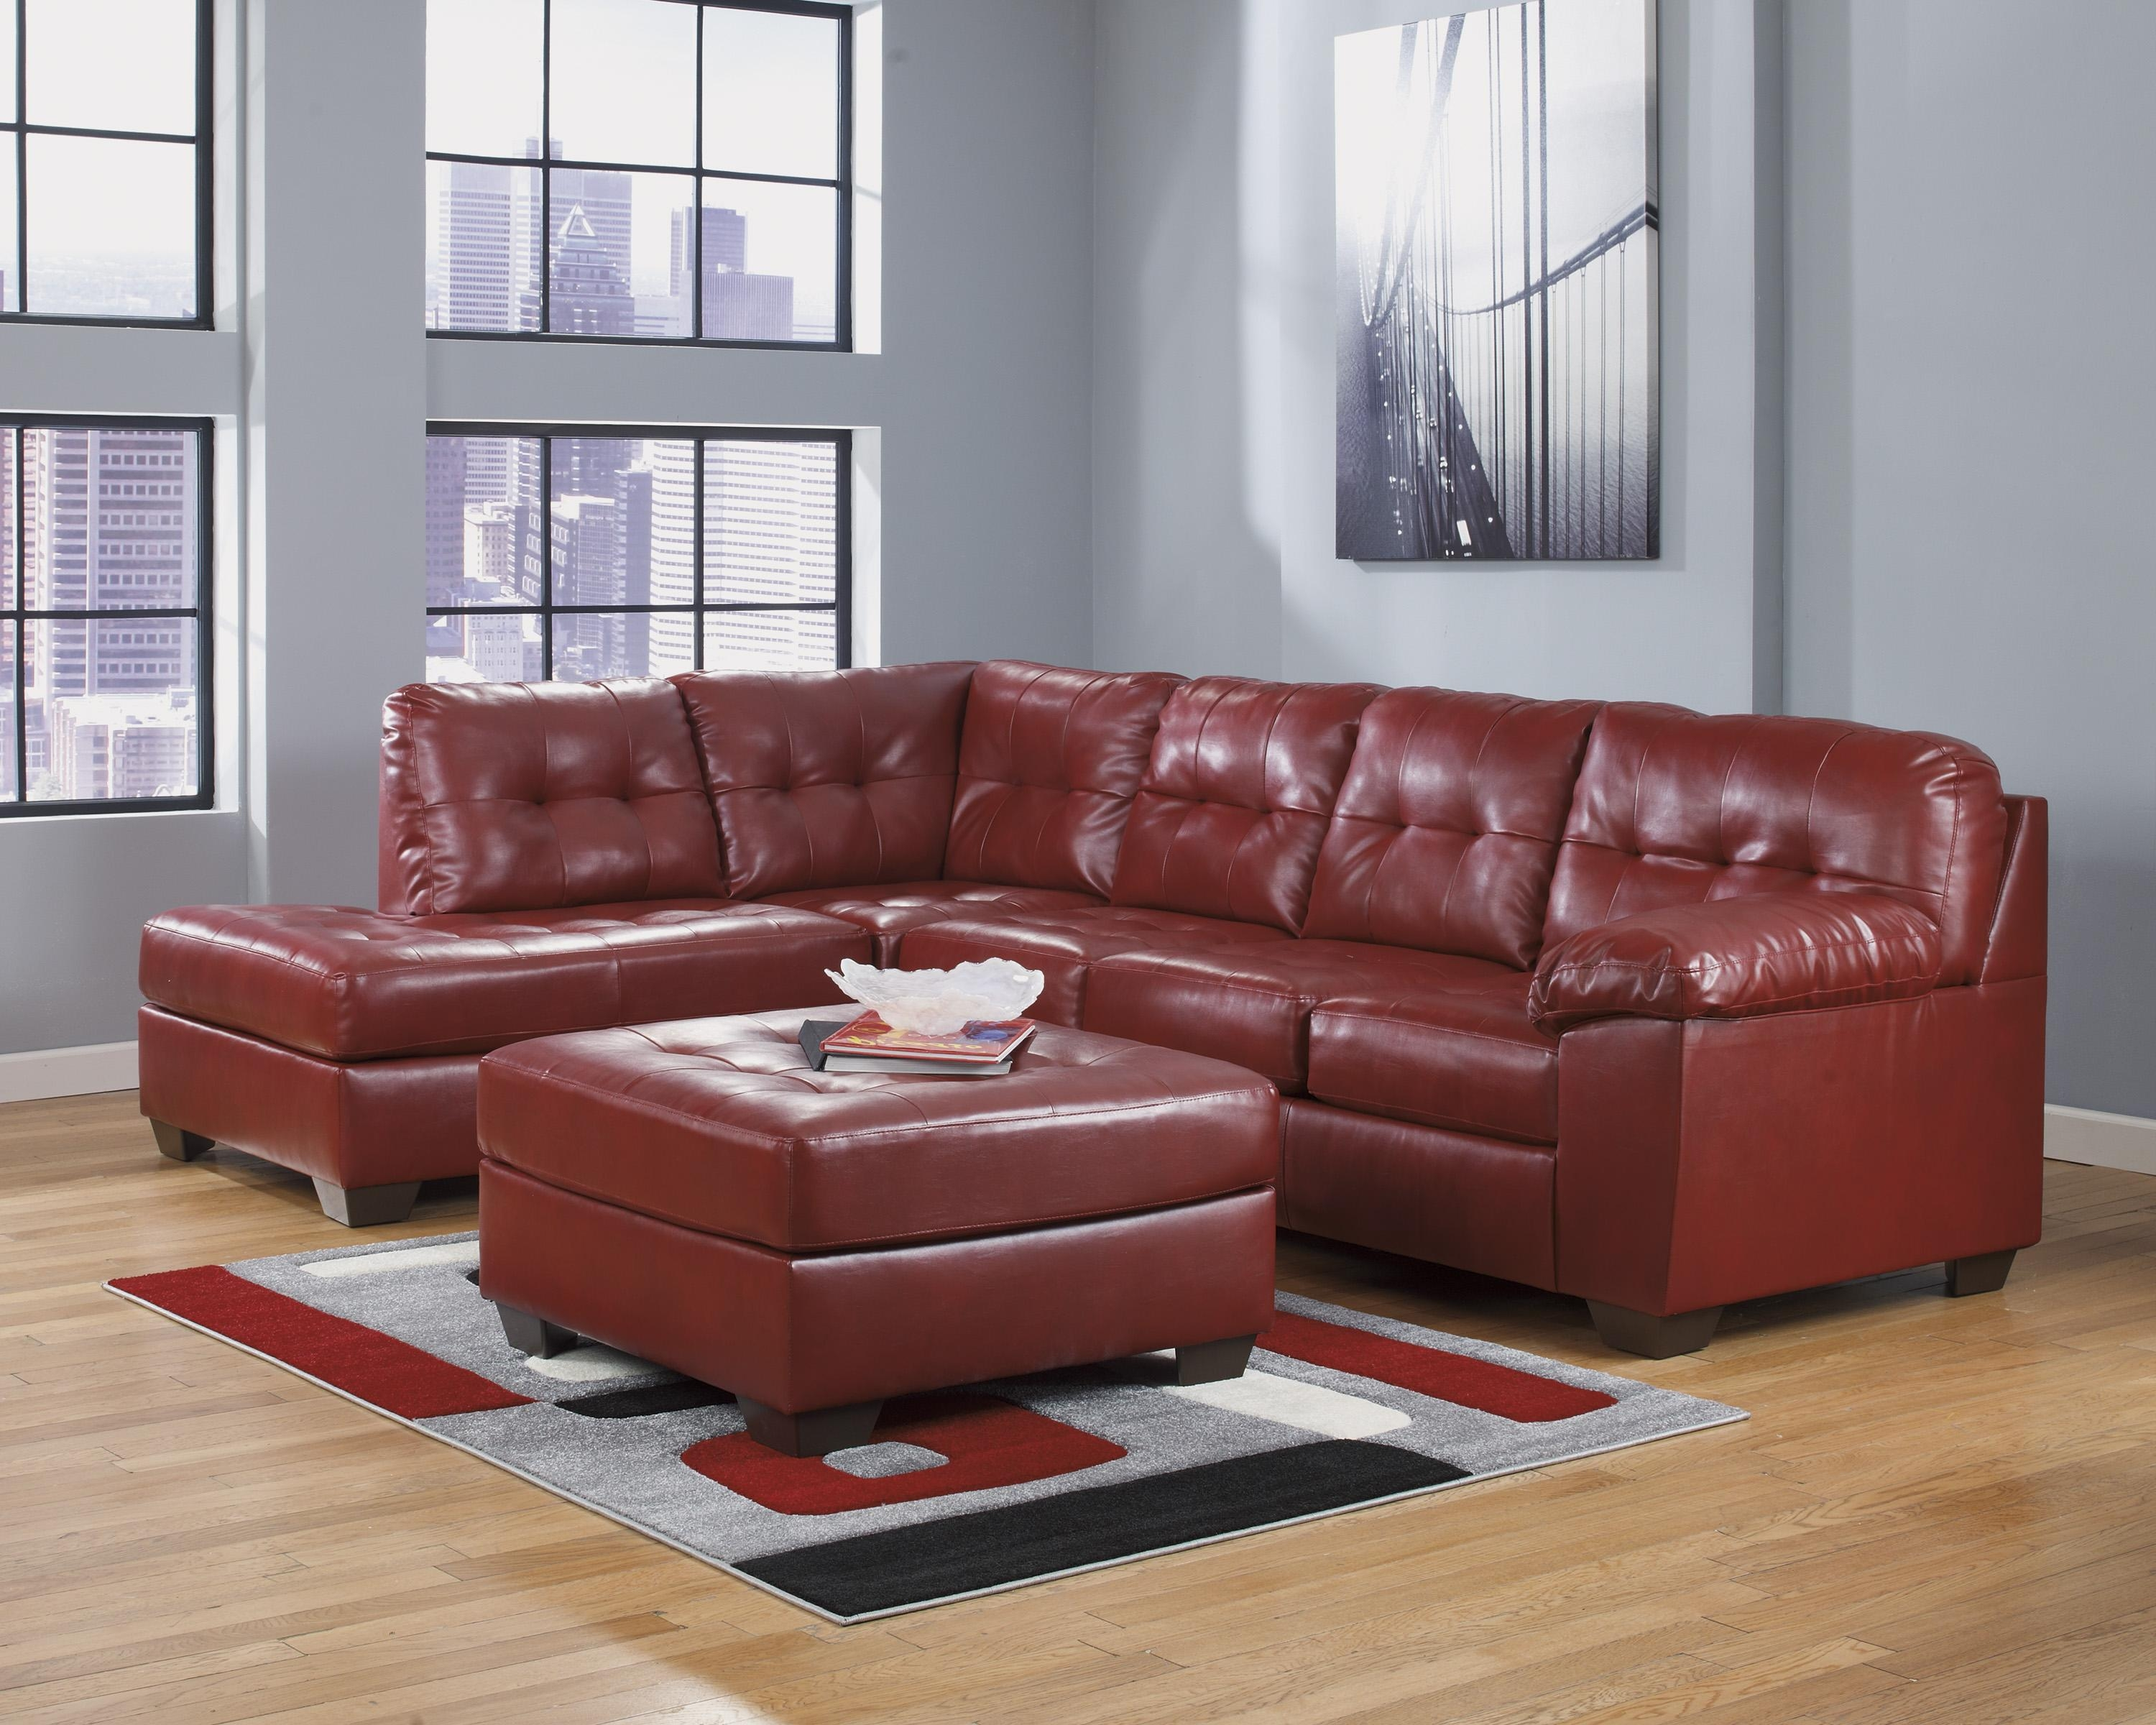 20 Top Ashley Furniture Leather Sectional Sofas Sofa Ideas